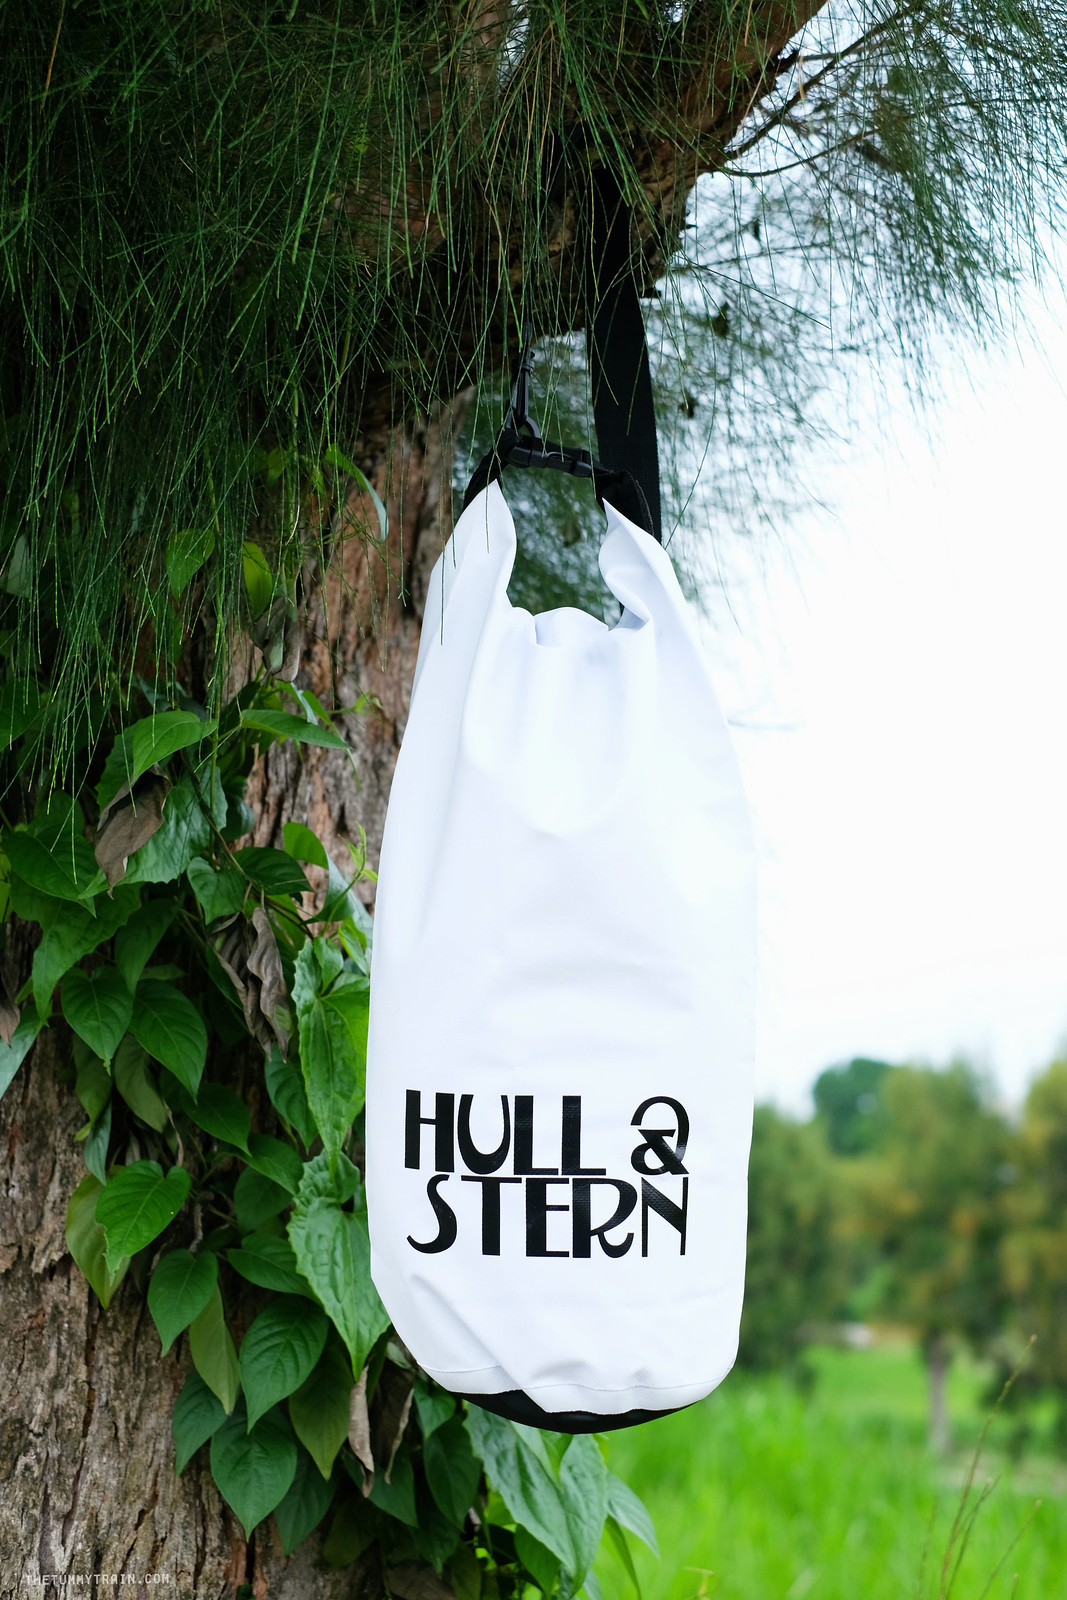 27754467090 6eb0ab3a52 h - A heavy case of wanderlust + Hull & Stern Adventure bag giveaway!